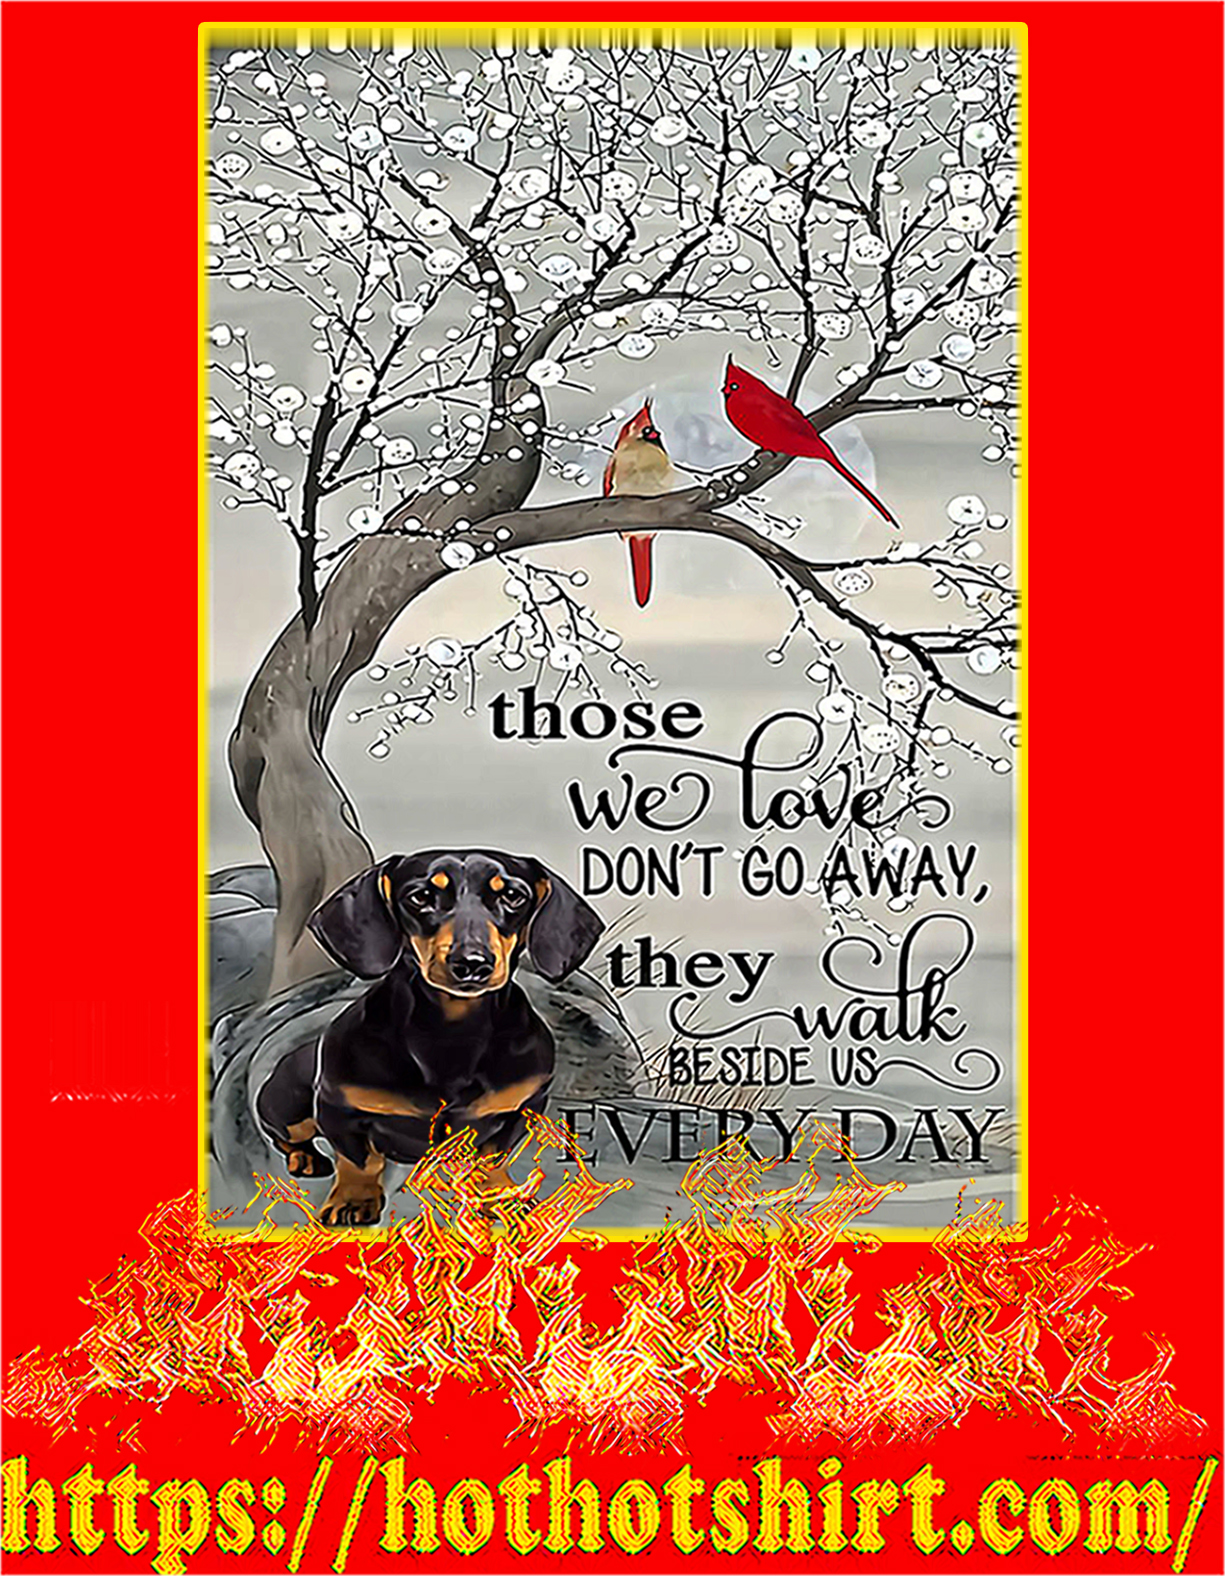 Dachshund those we love don't go away poster - A4